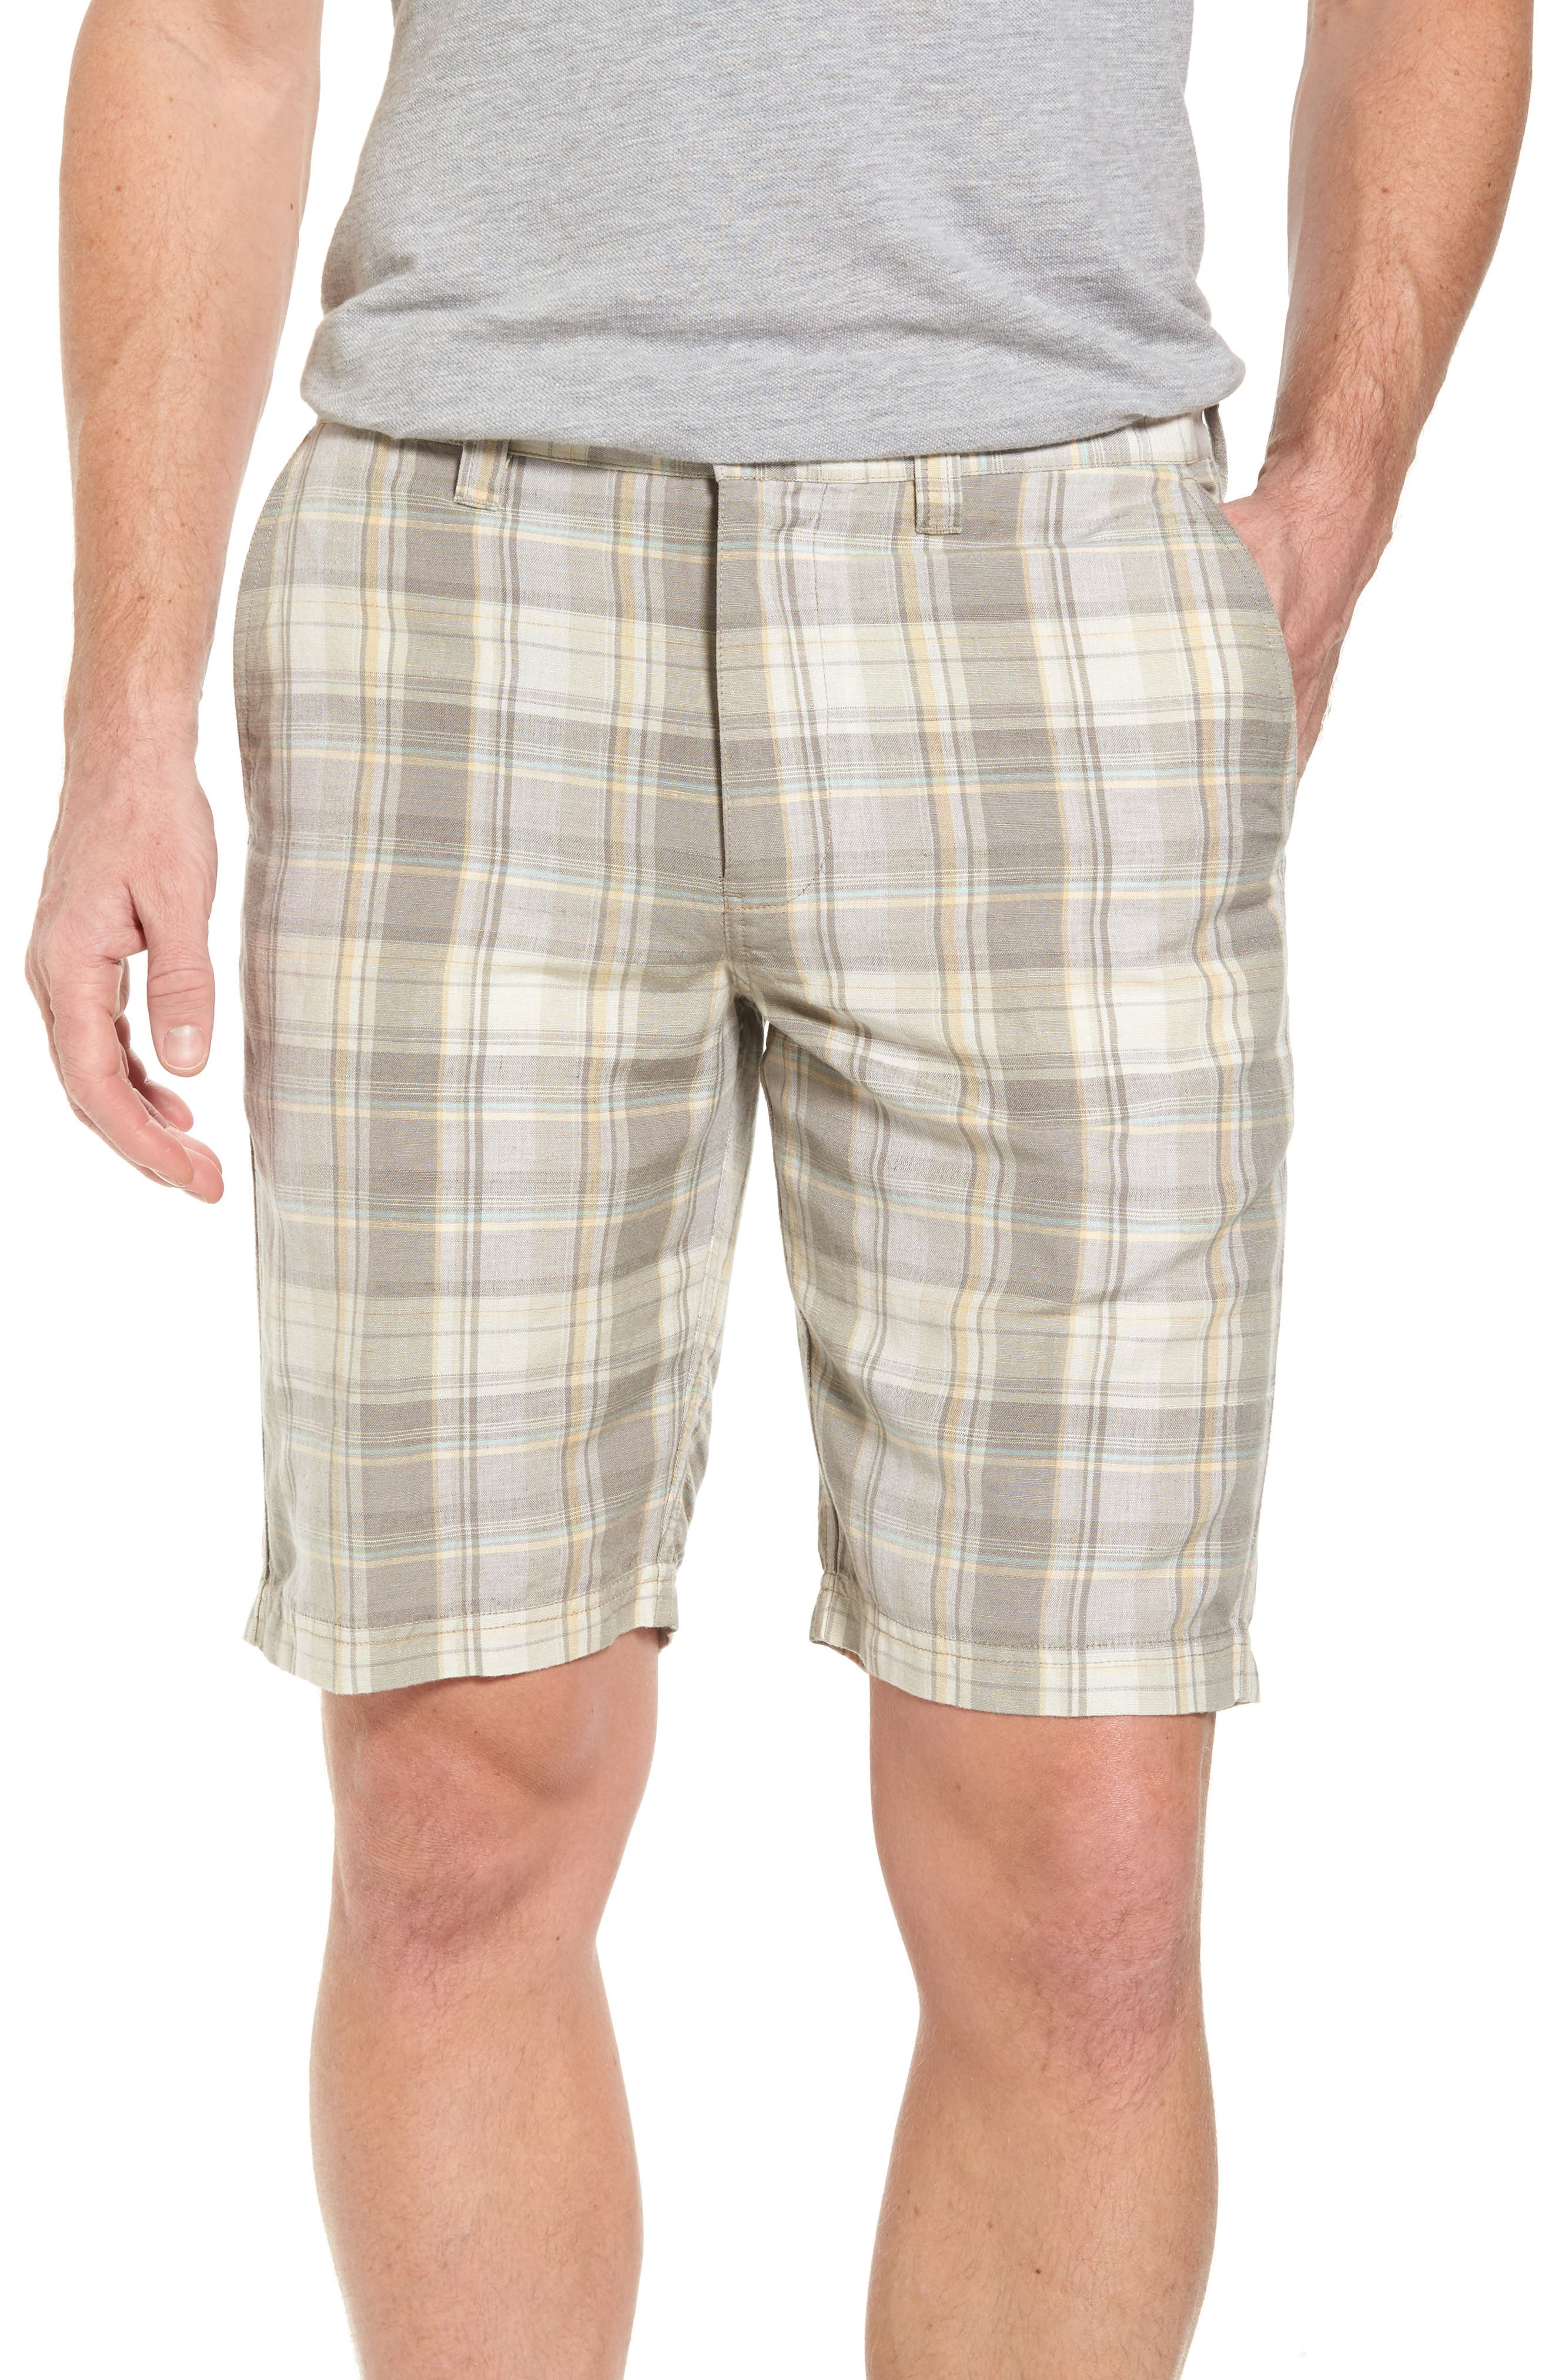 Coastal Dunes Plaid Shorts,                         Main,                         color, 250